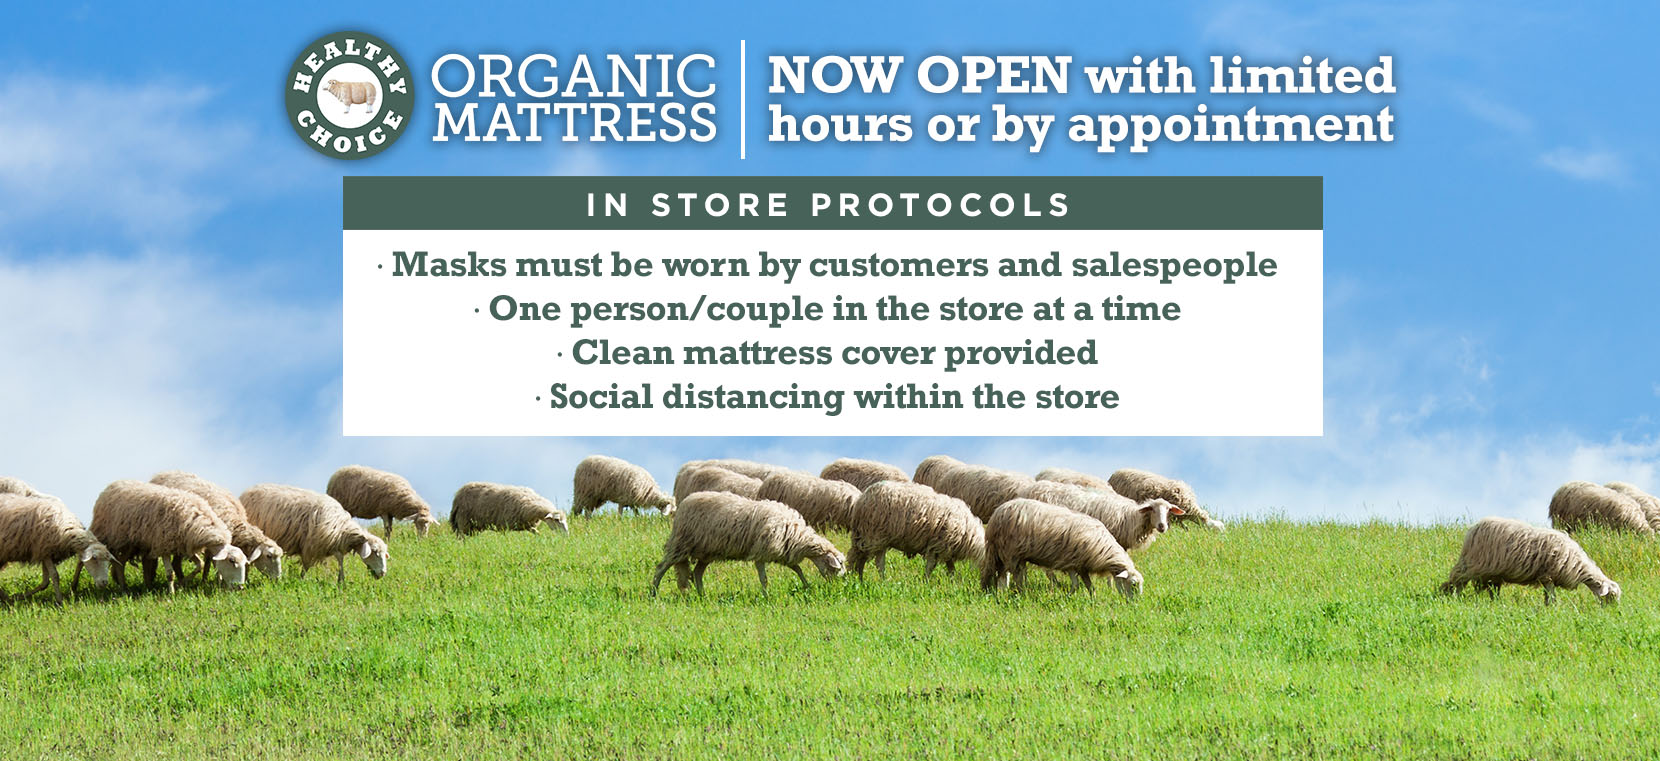 Chemical Free Mattresses for the whole family